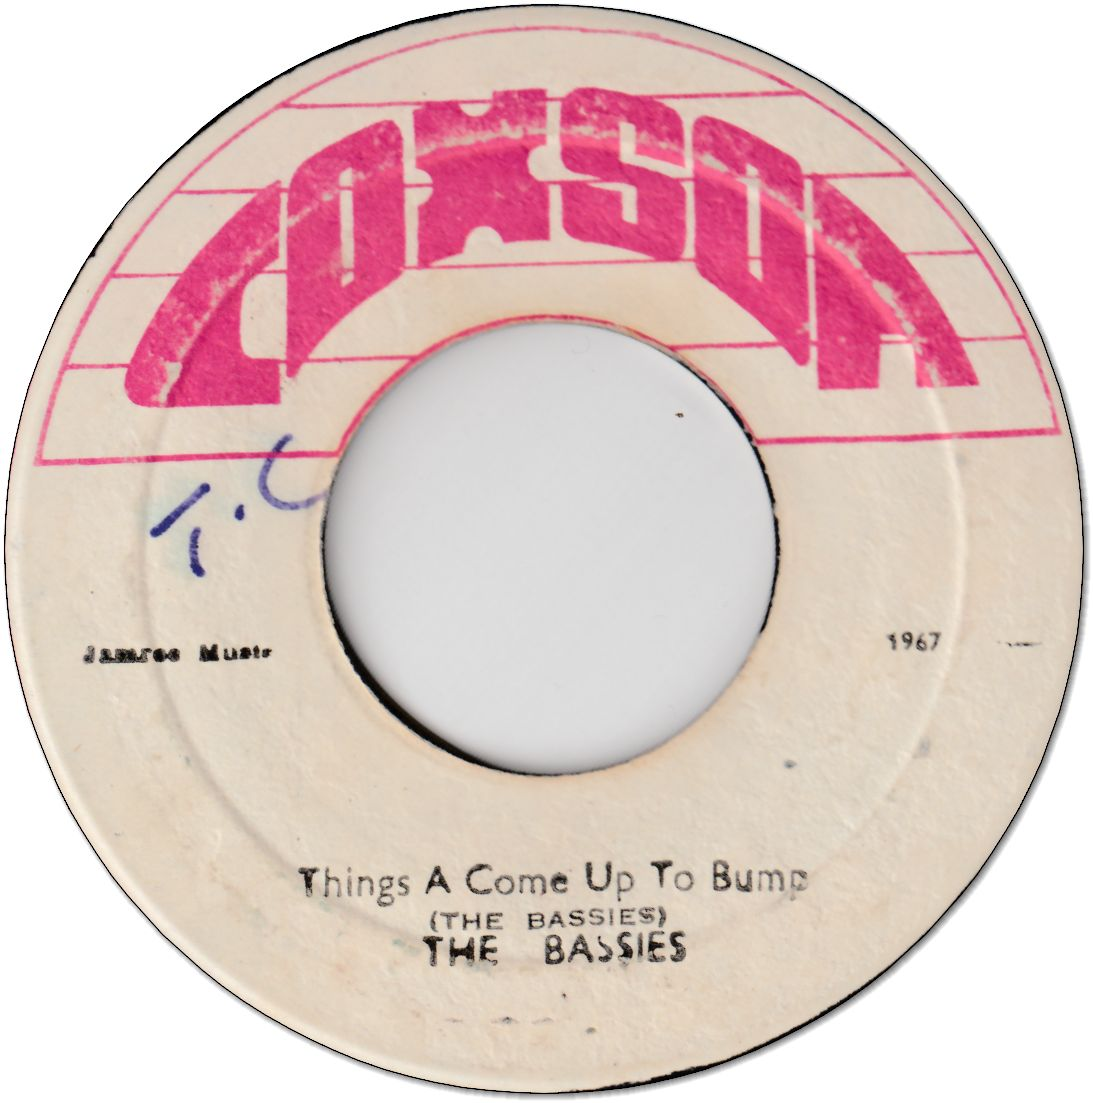 THINGS A COME UP TO BUMP (VG/WOL) / THINGS A COME TO DUB (VG)